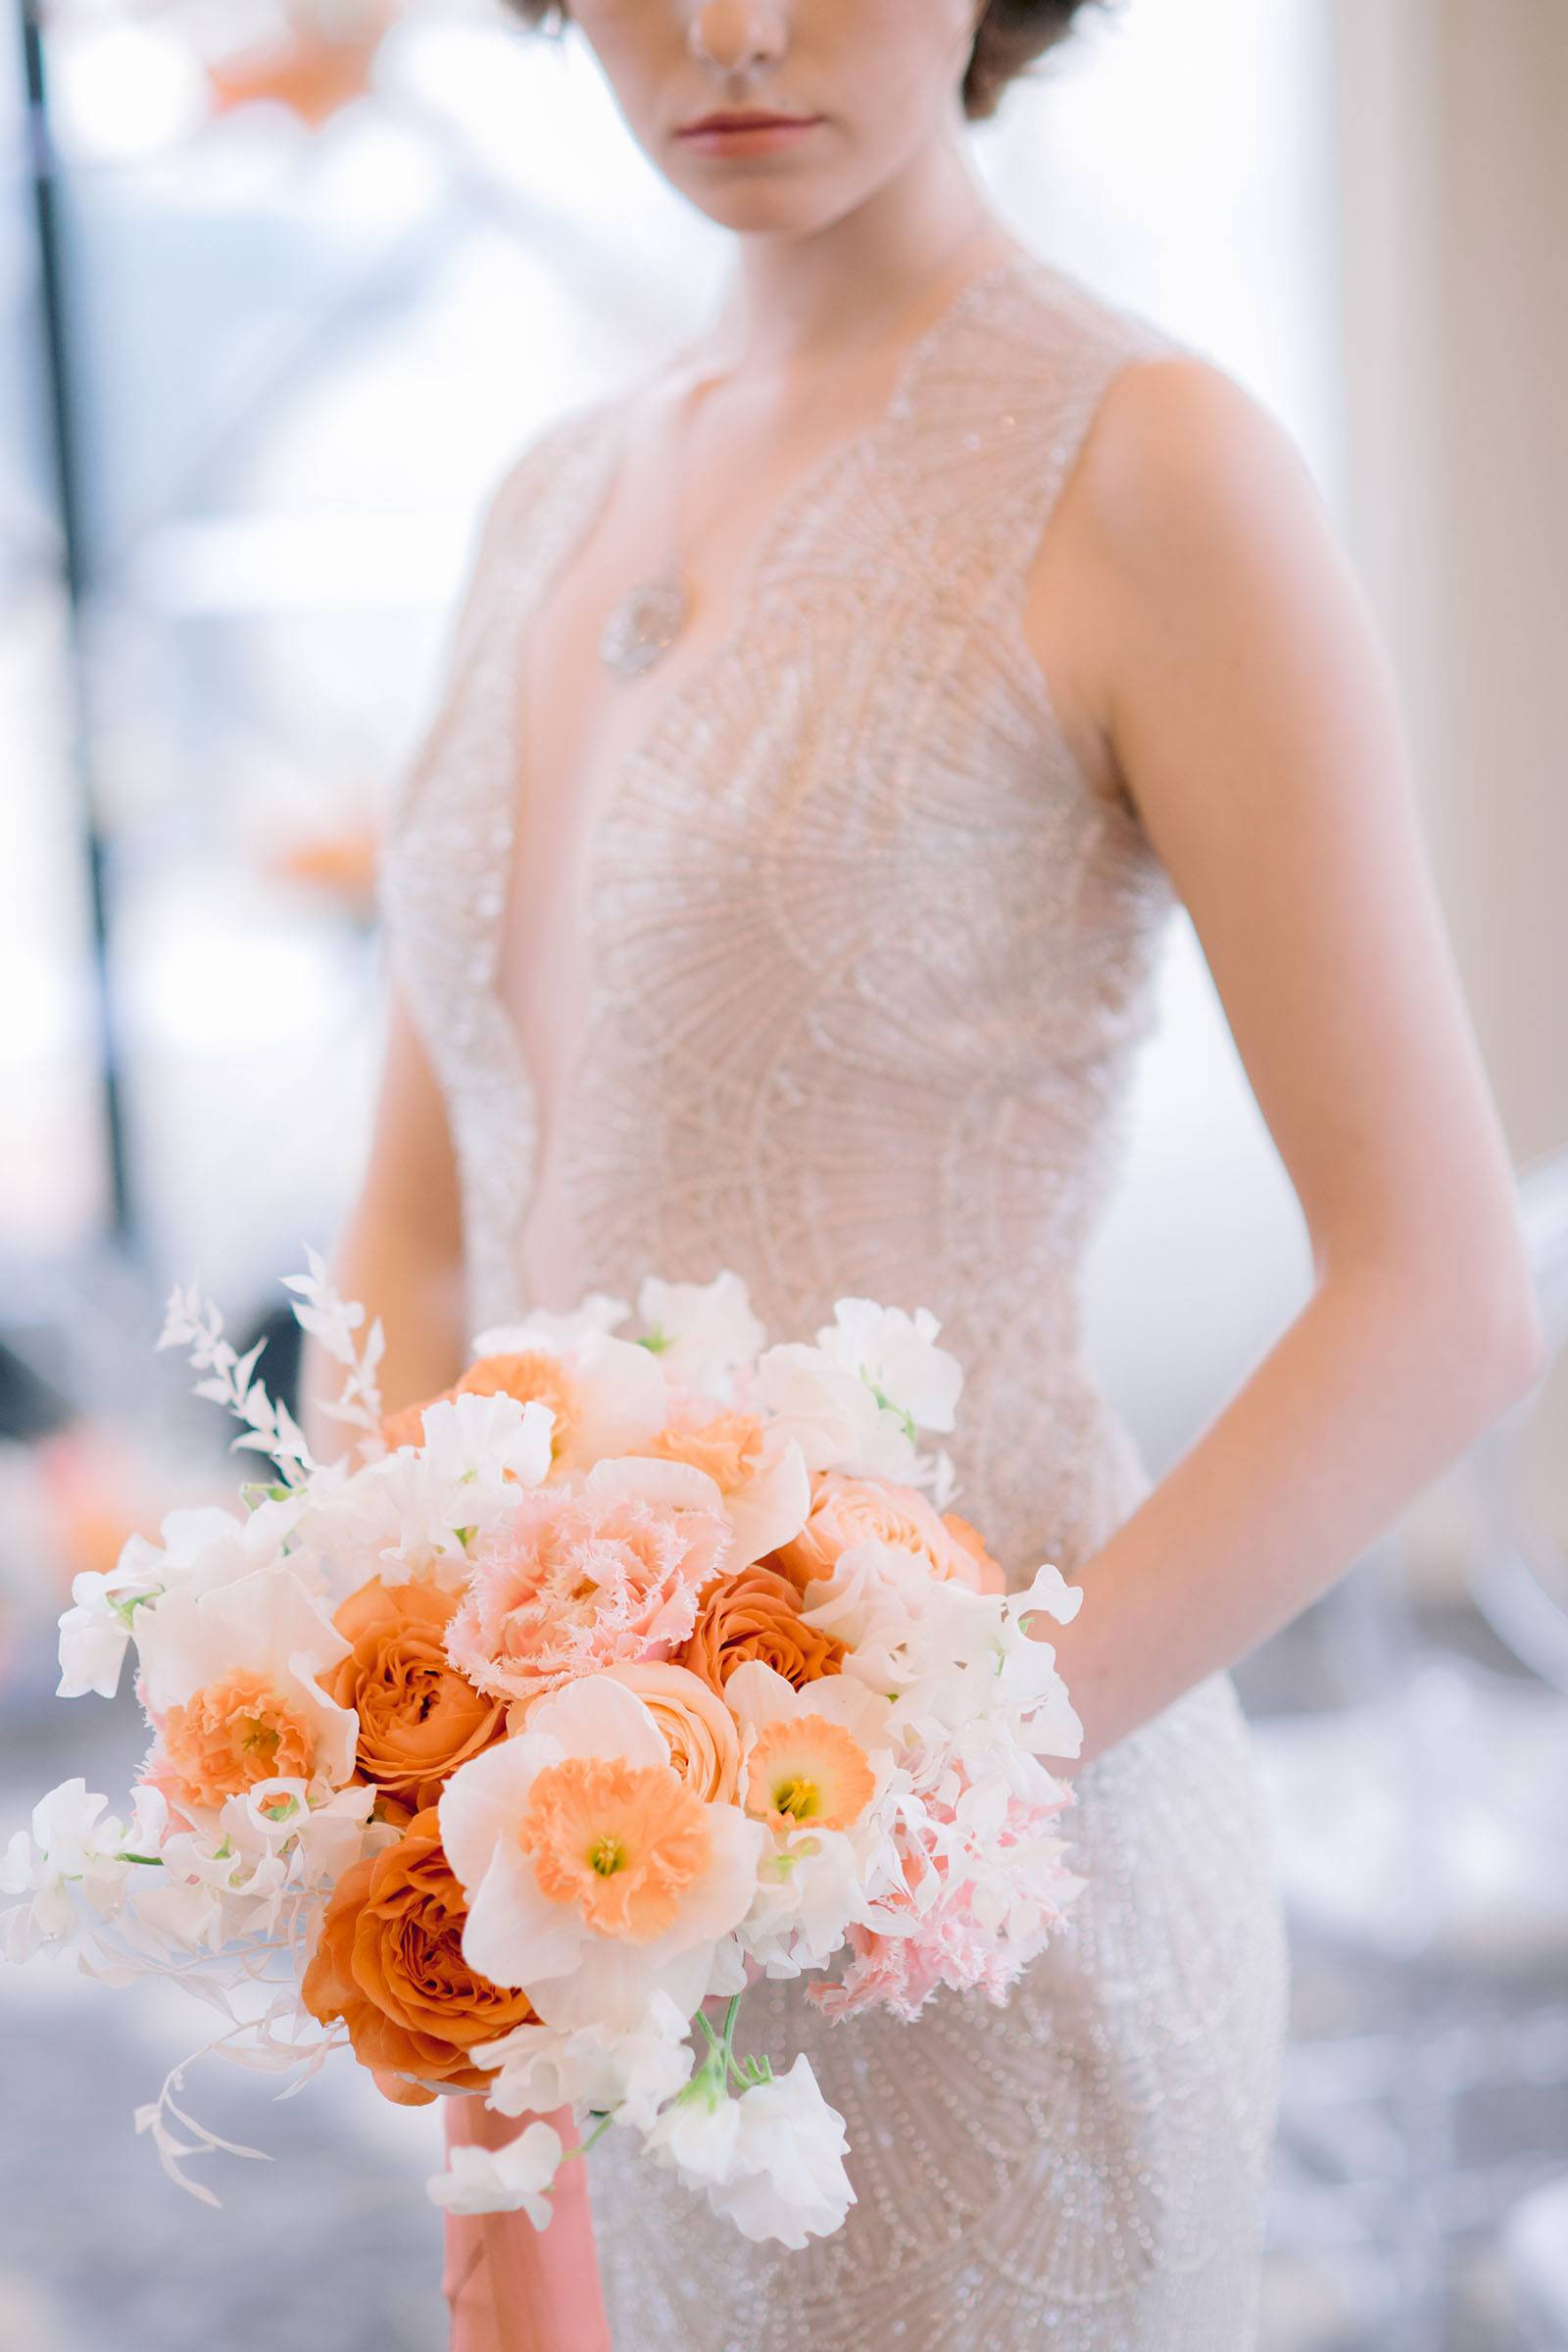 Beaded bridal gown and bouquet in coral, peach and white